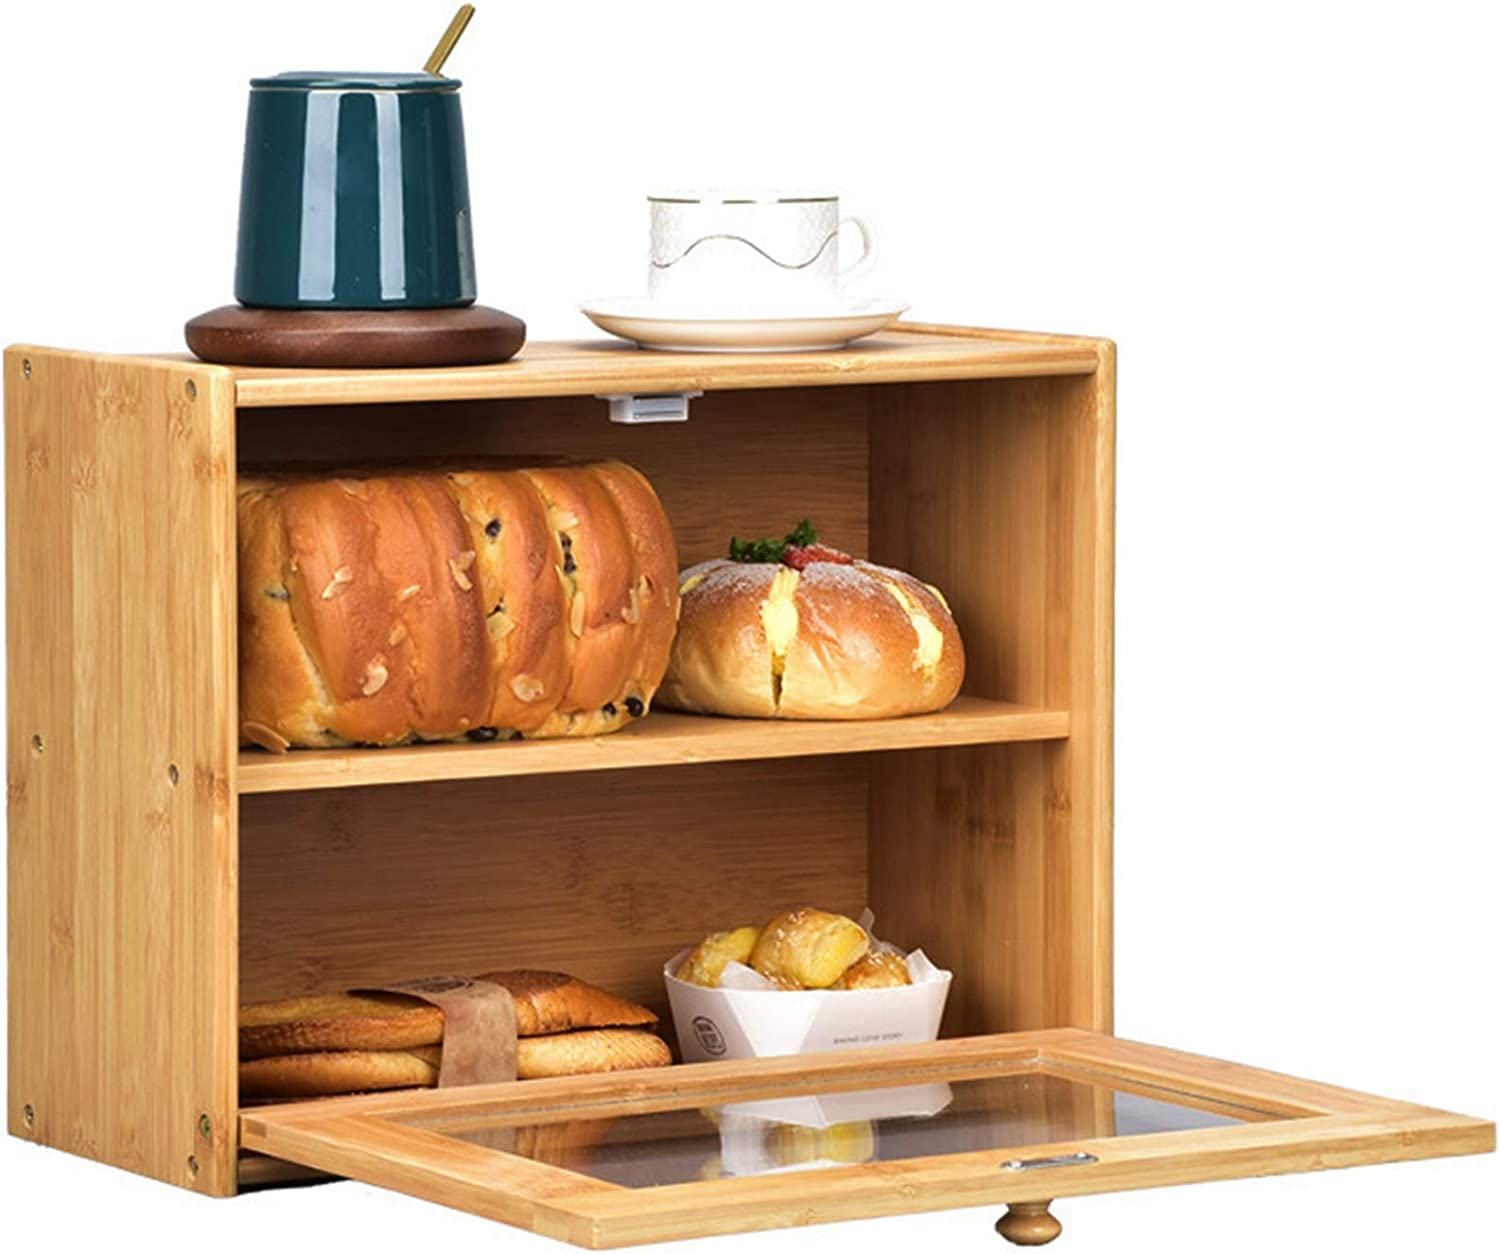 Lawei 2 Layer Bamboo Bread Box Large - Clear Wind with High order Complete Free Shipping